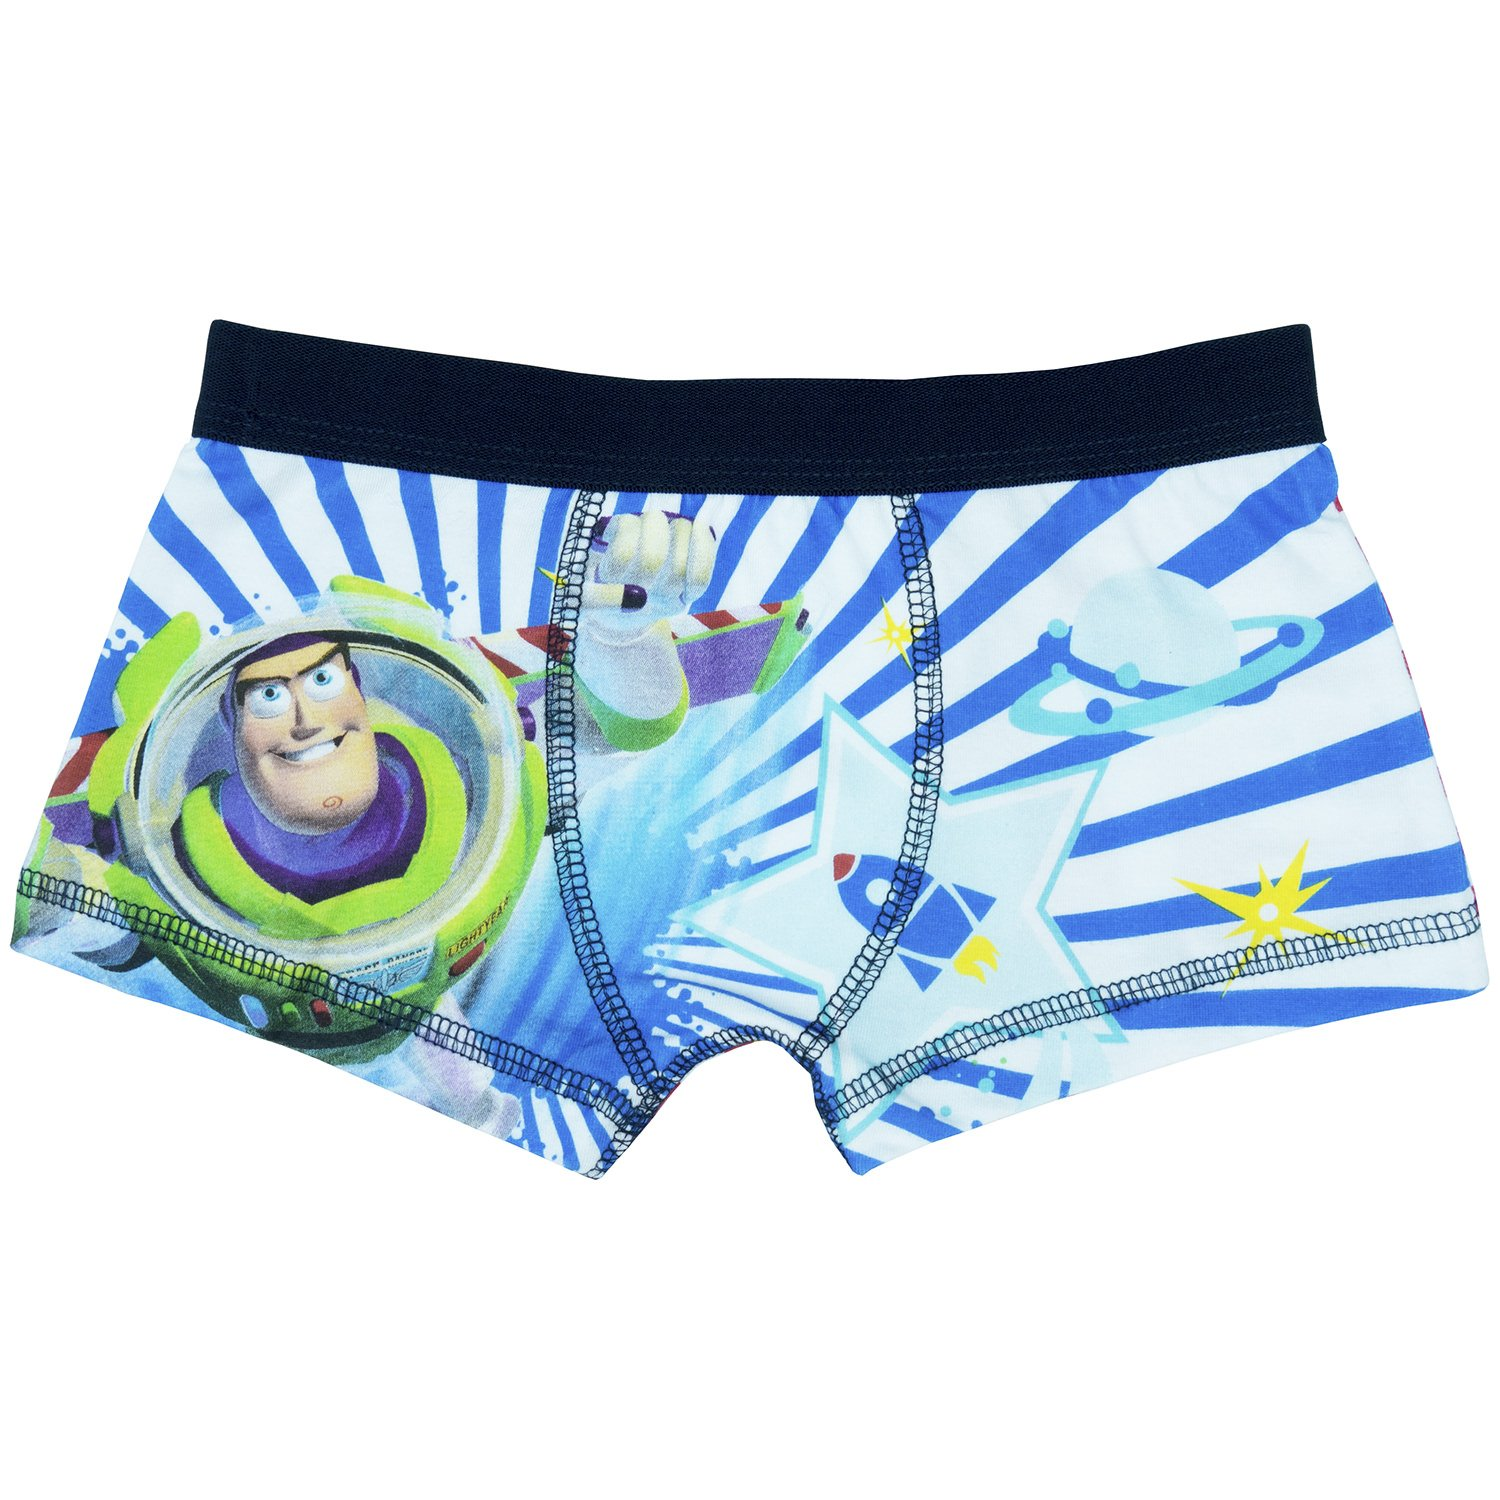 Cartoon Character Products Toy Story Woody Buzz Boys Boxer Shorts - Age 3-7 Years